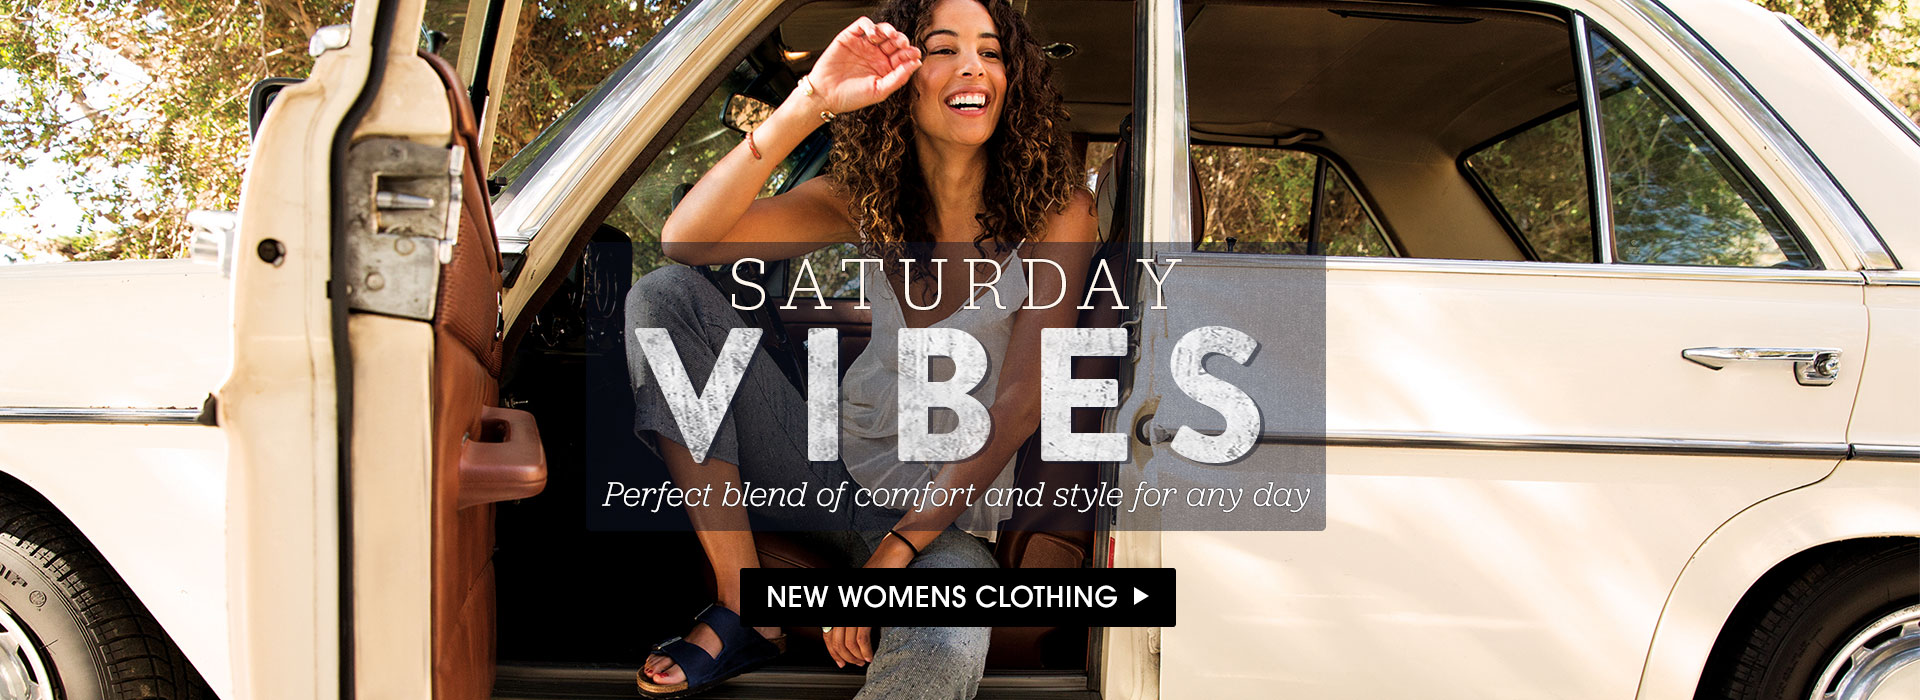 Saturday Vibes. Shop new women's clothing.